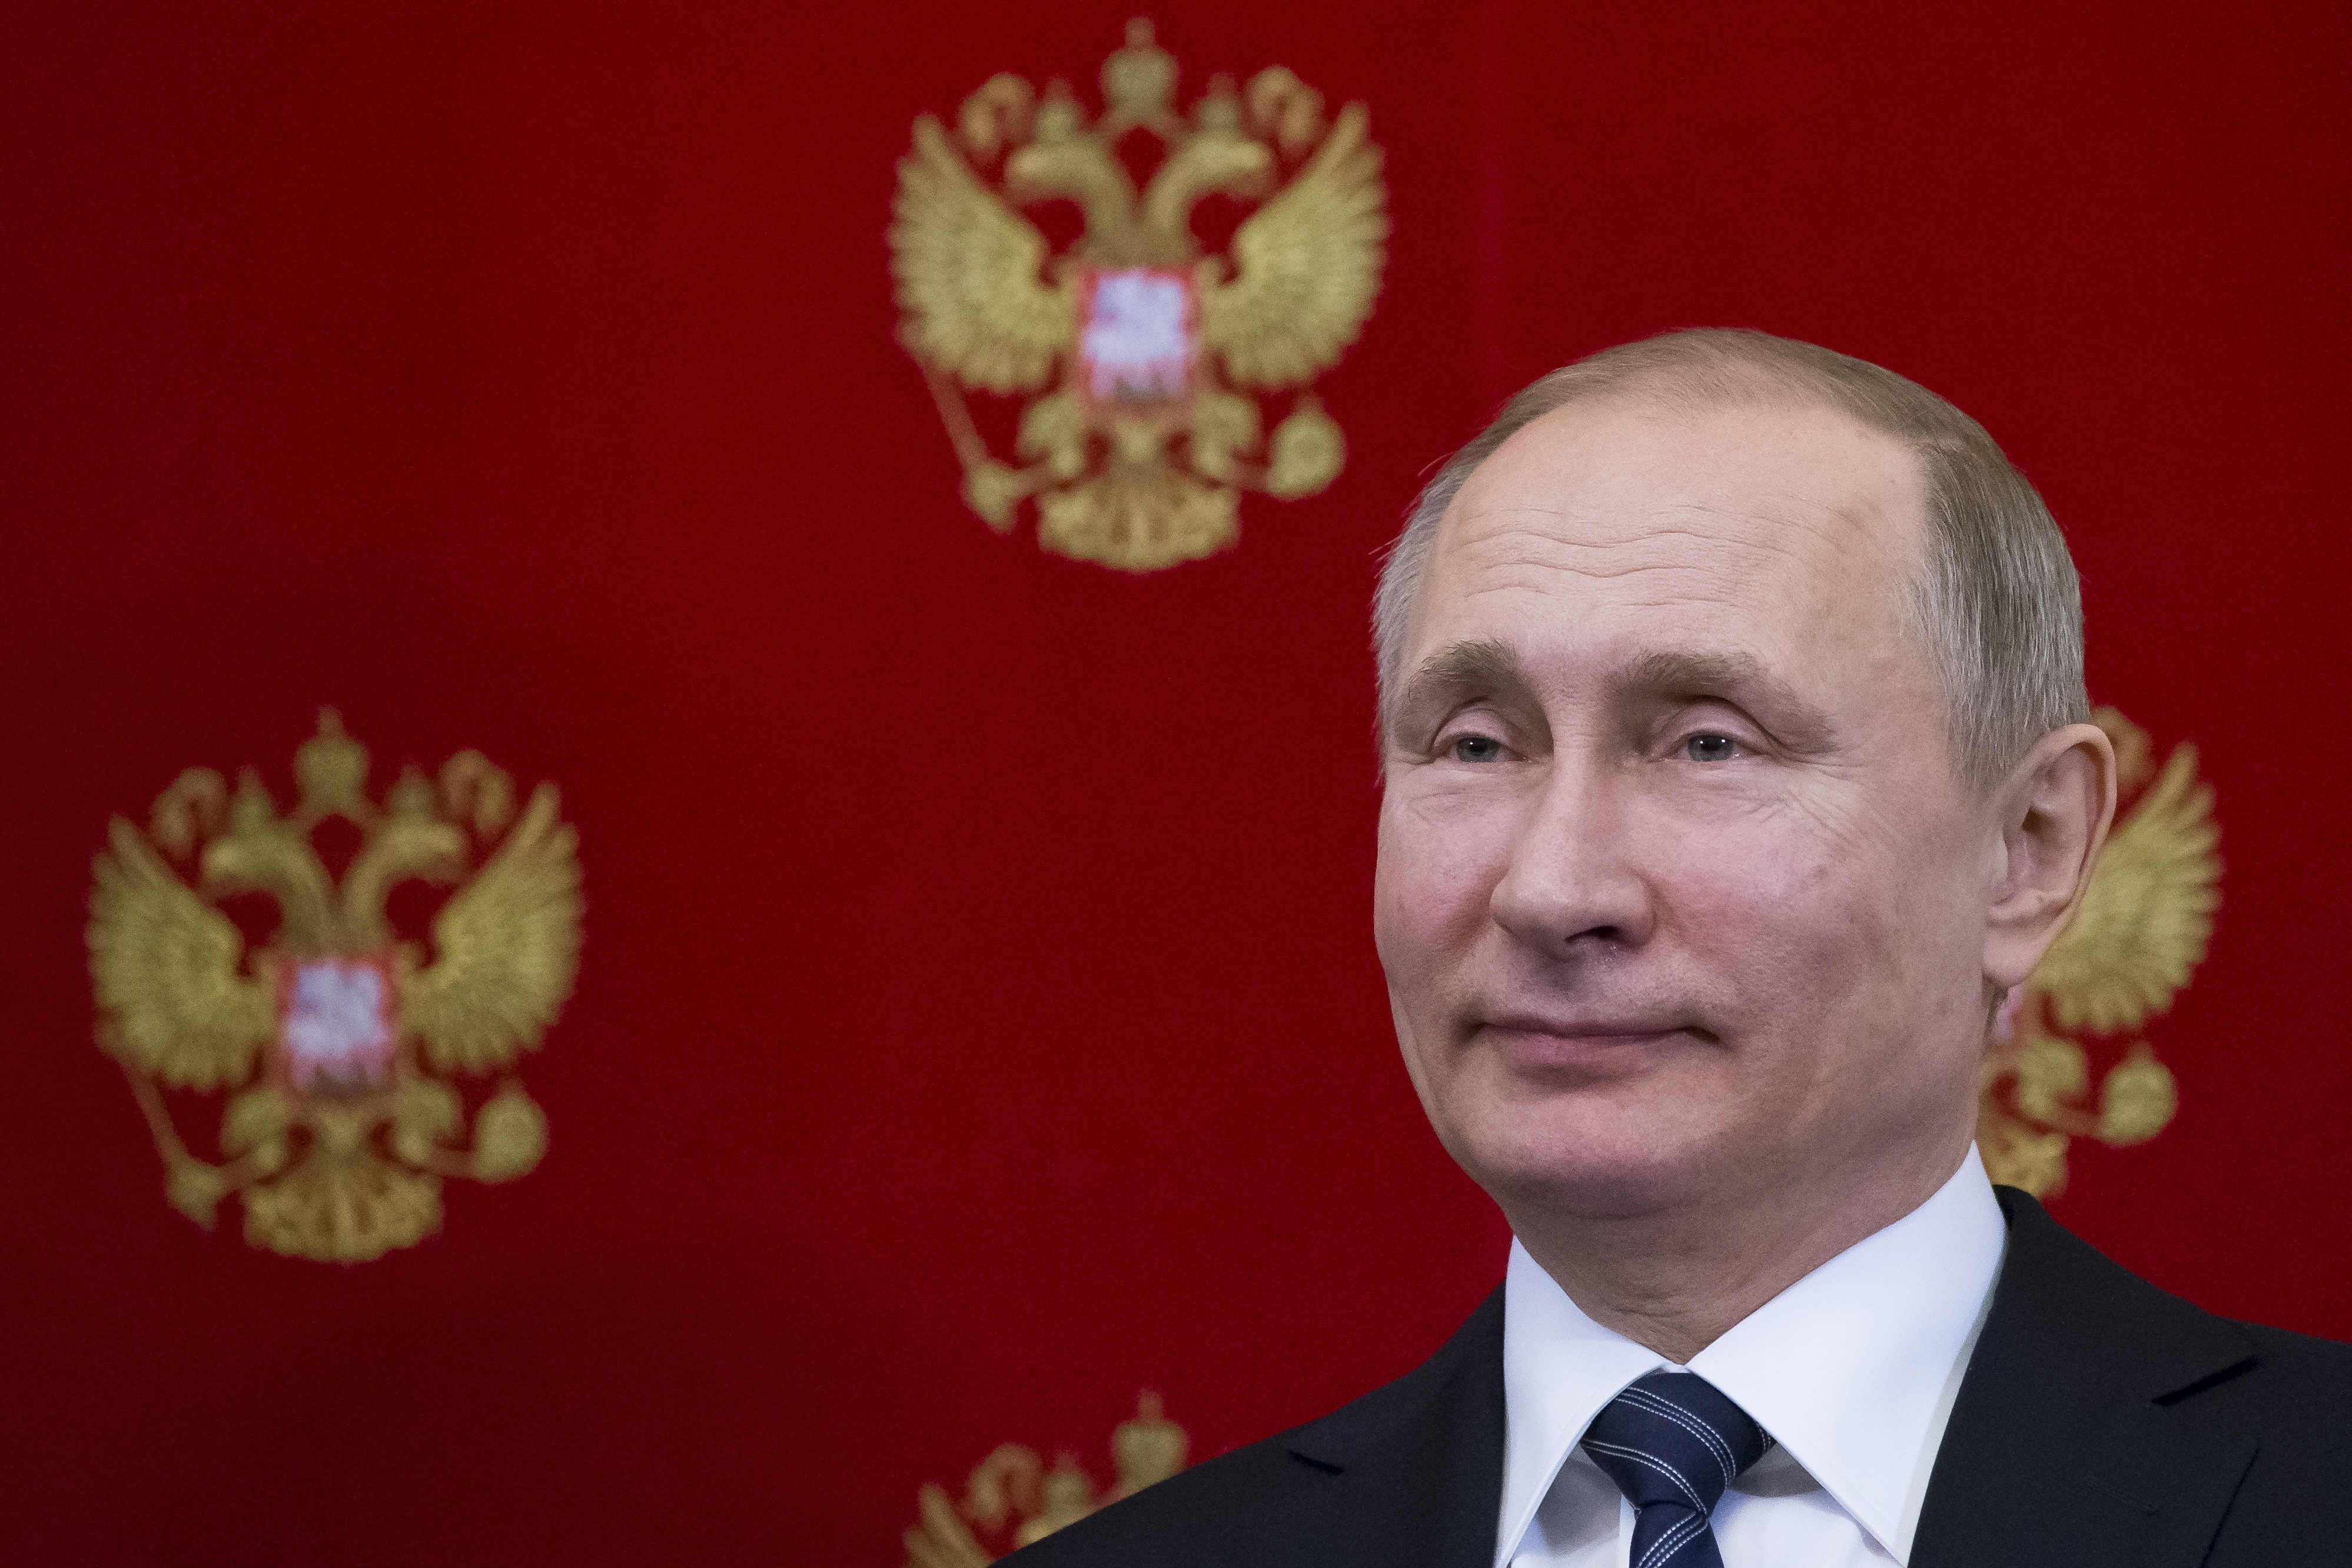 Vladimir Putin Is Reportedly Richer Than Bill Gates and Jeff Bezos Combined